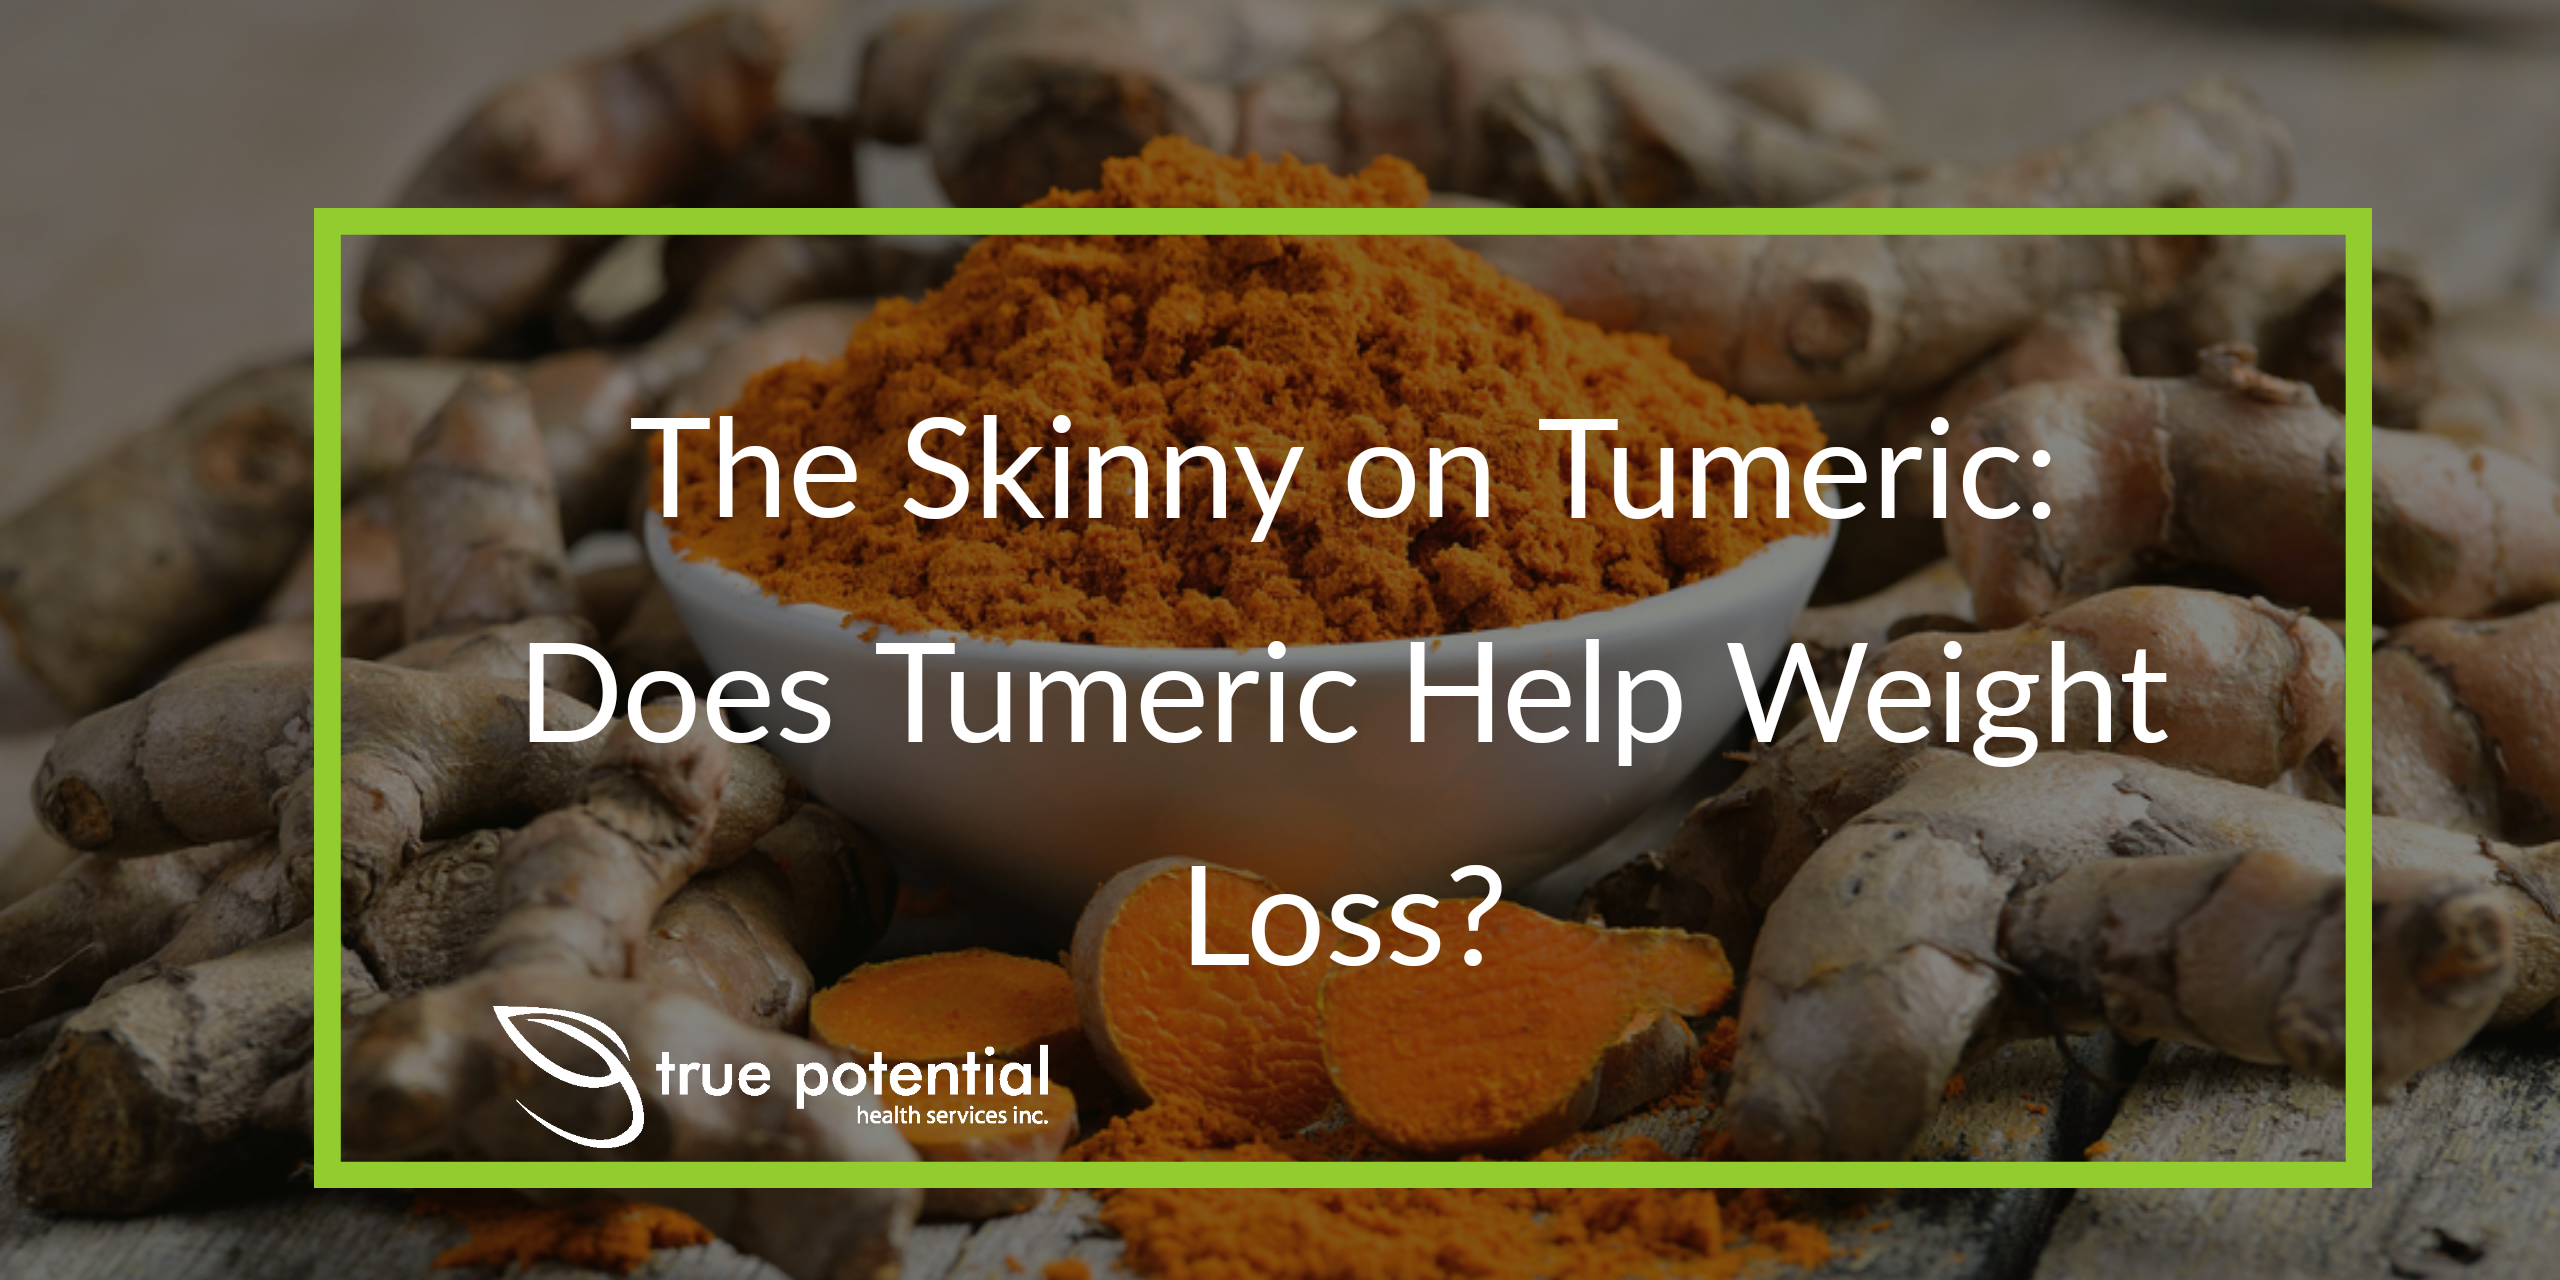 Does turmeric help weight loss?